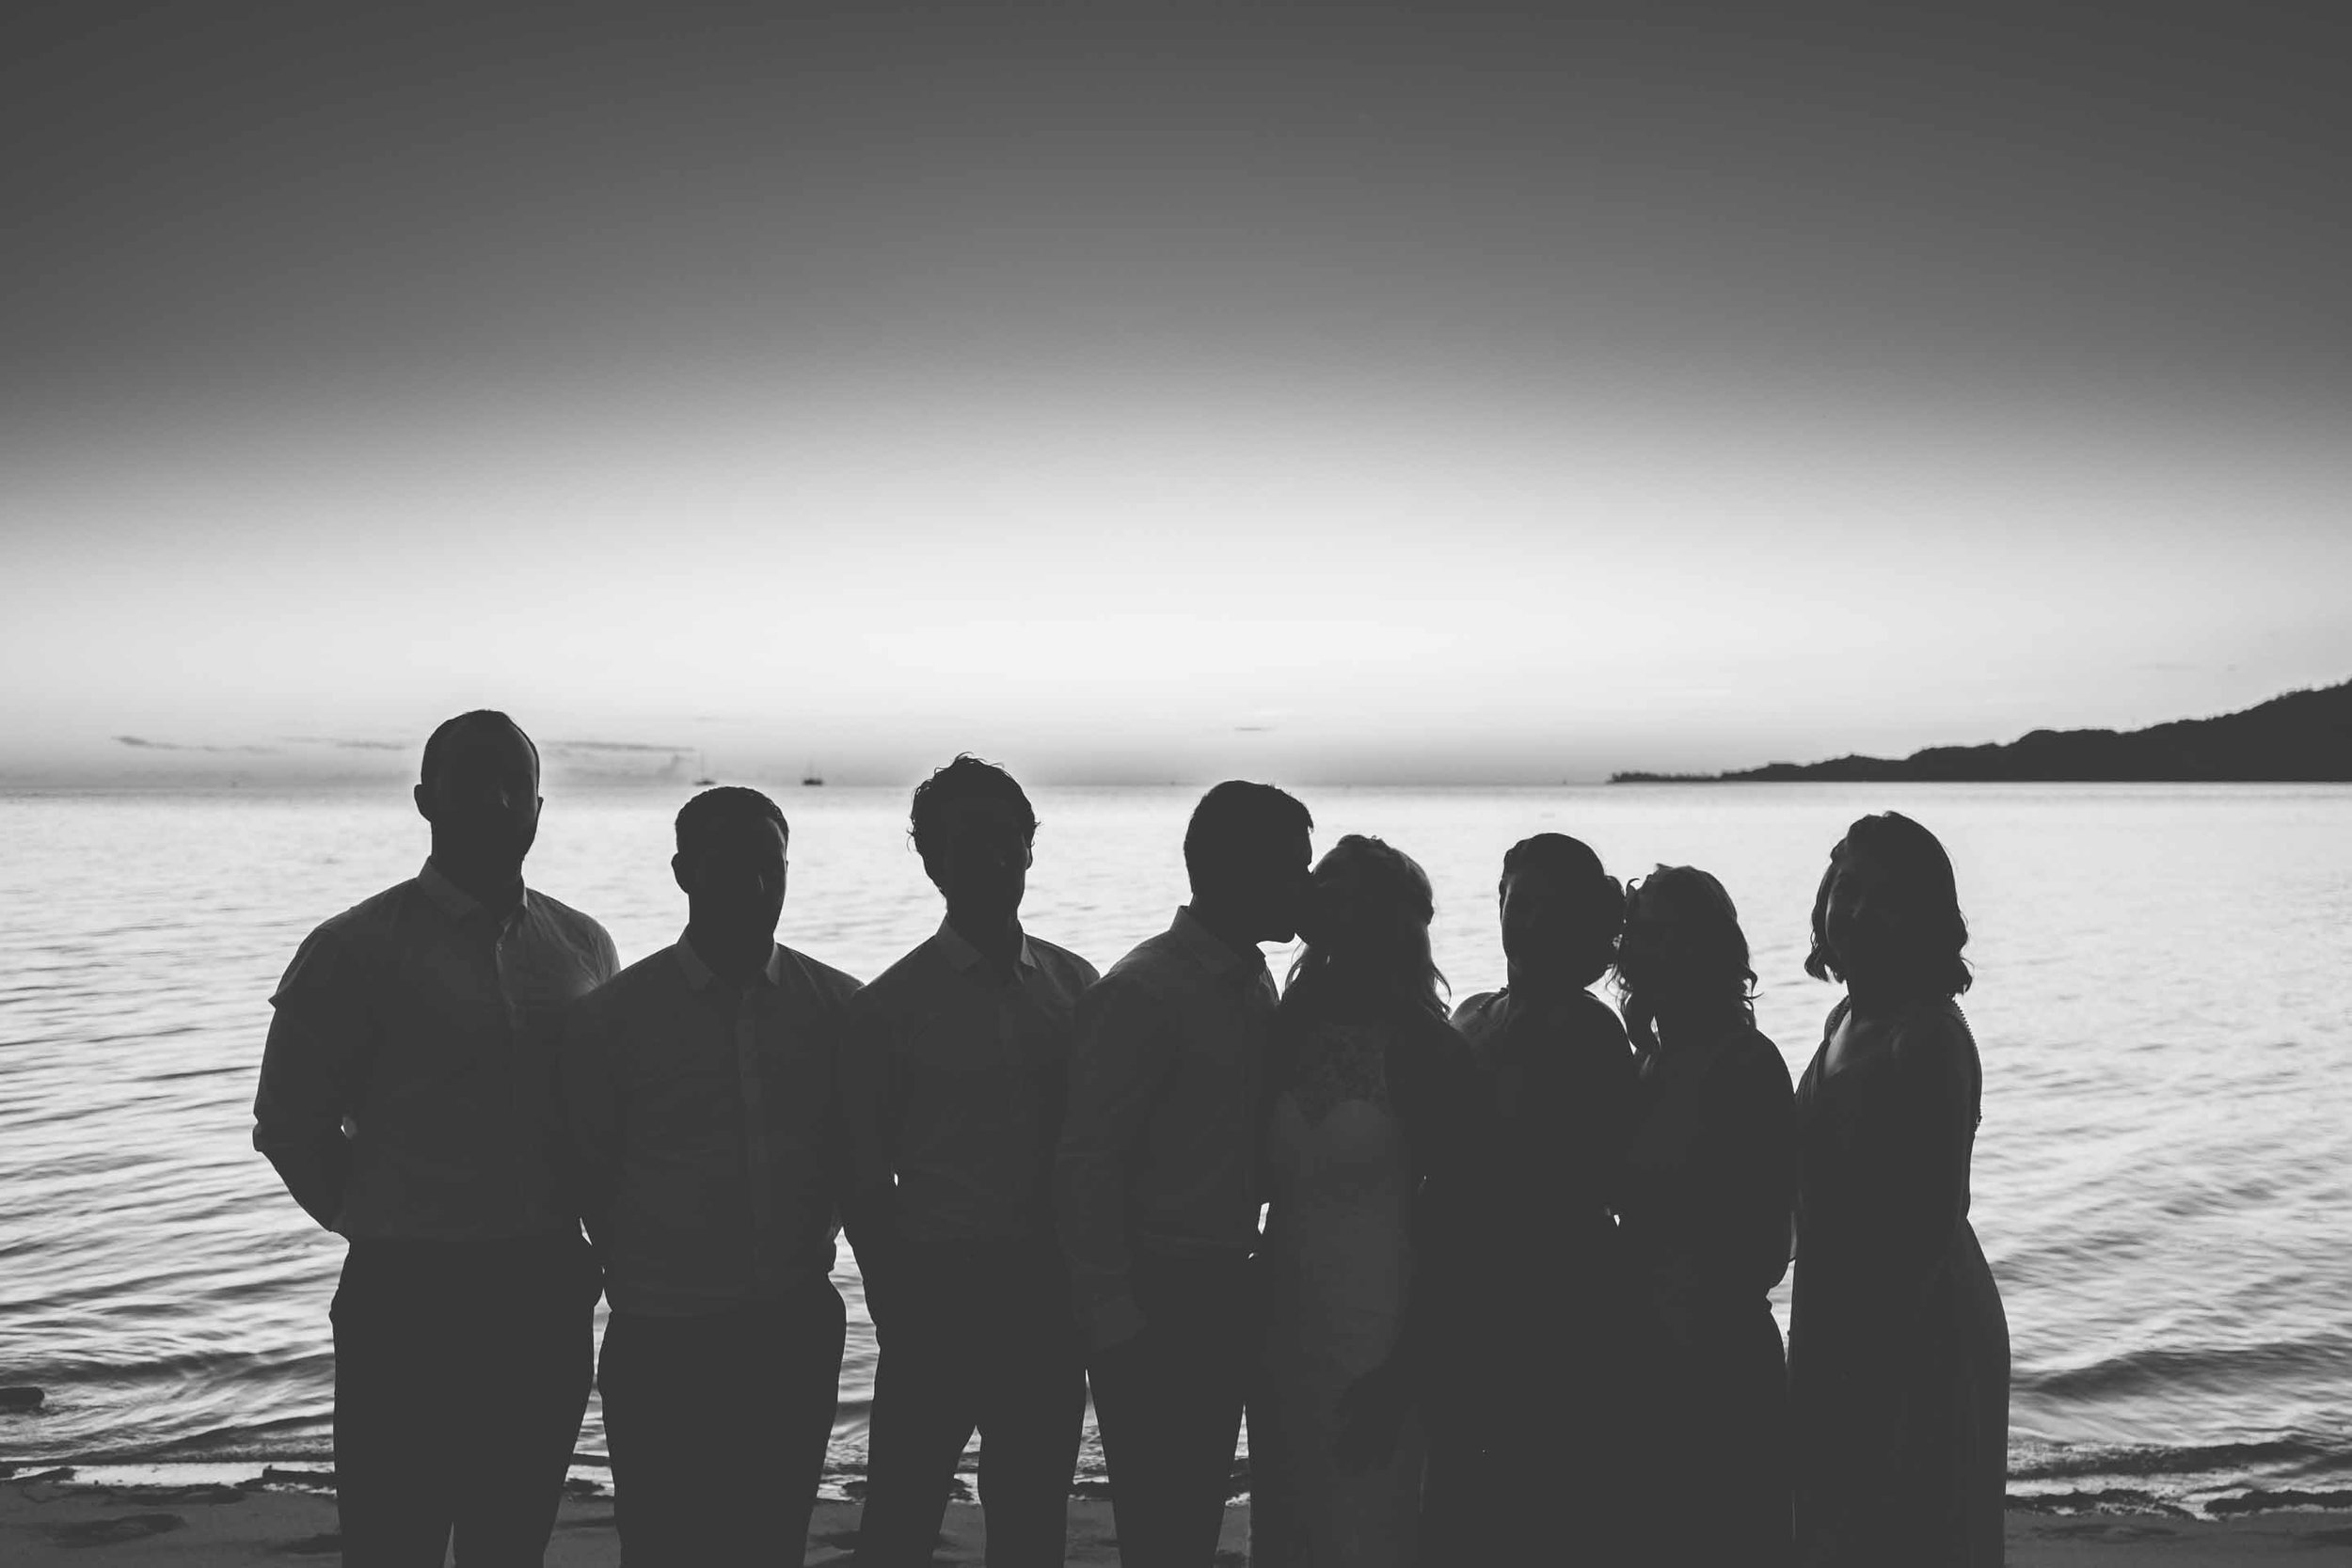 the bridal party silhouetted against the calm warm seas just after the sun has set in black and white